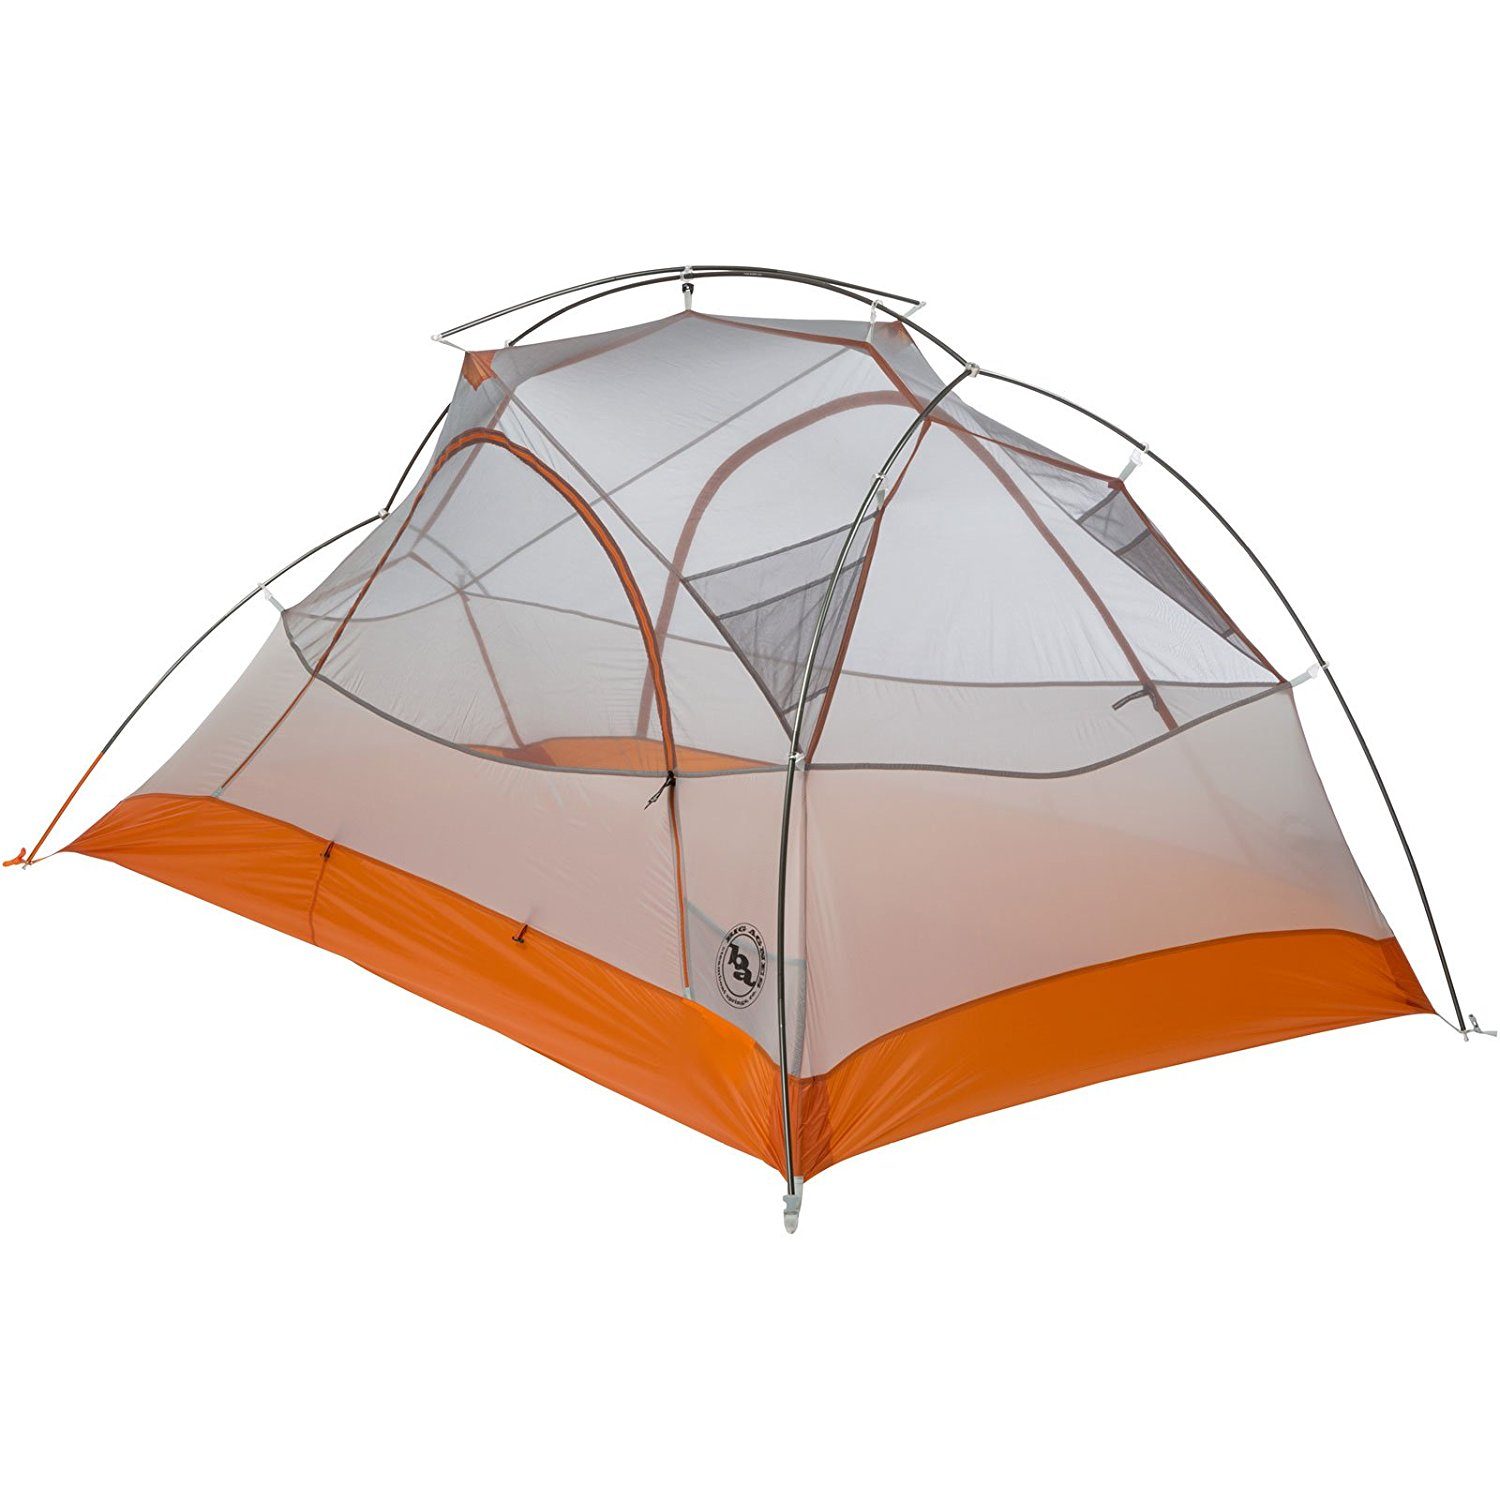 Big Agnes Copper Spur in Ultralight Tent